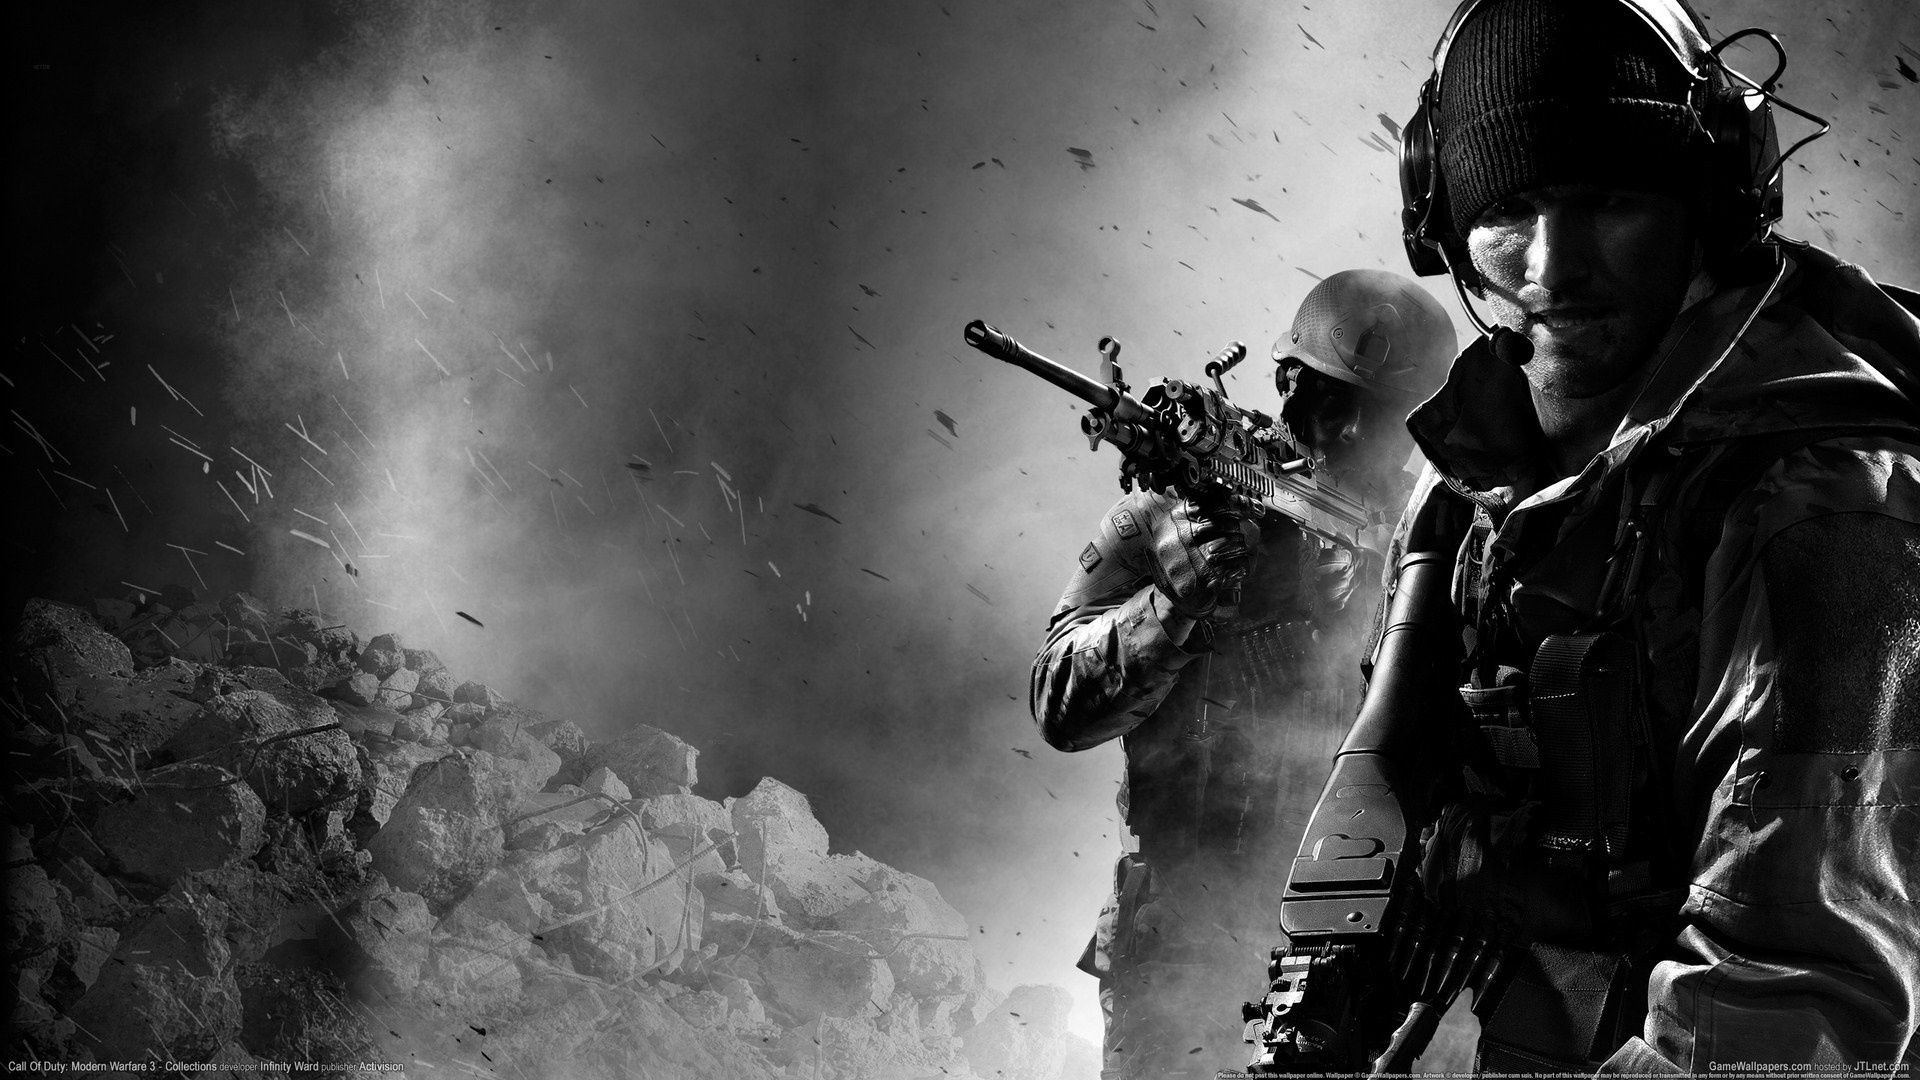 call-of-duty-modern-warfare-2-wallpaper-